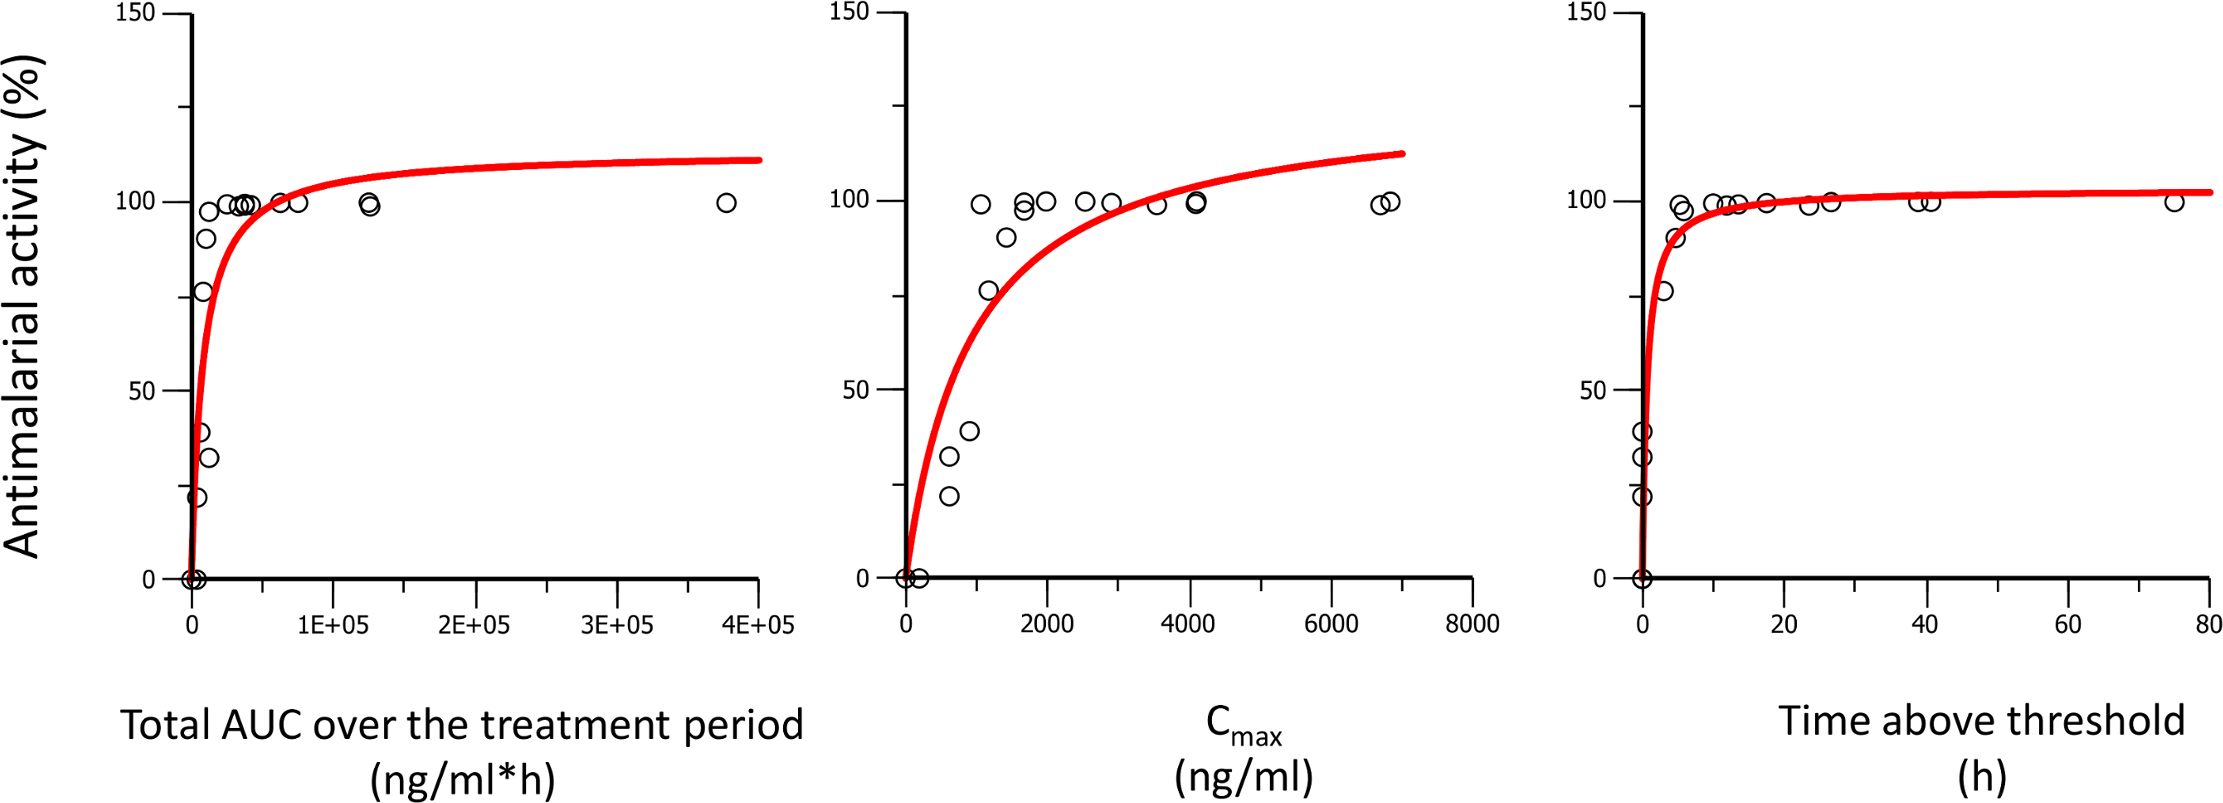 Antimalarial activity in <i>P</i>. <i>berghei</i> infected mice plotted against AUC, C<sub>max</sub>, and time above threshold over the entire treatment period (1 or 3 d).